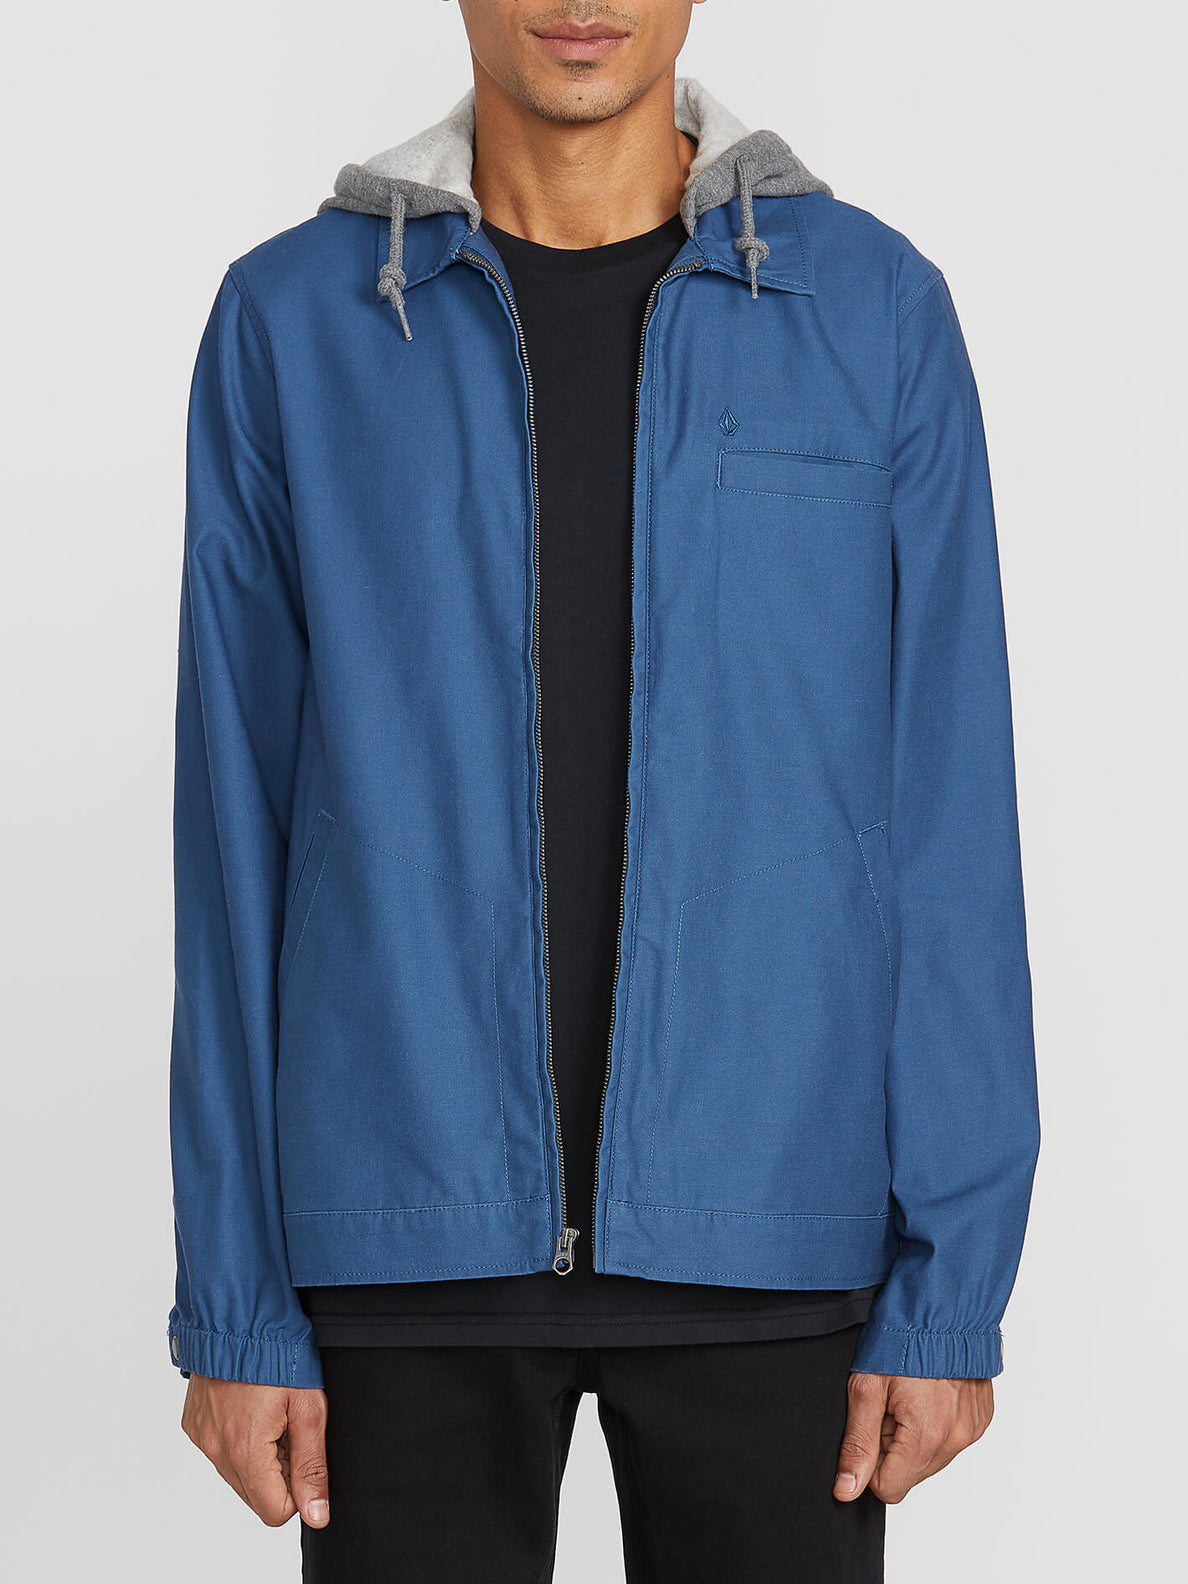 Warren Jacket - Smokey Blue (A1531700_SMB) [1]